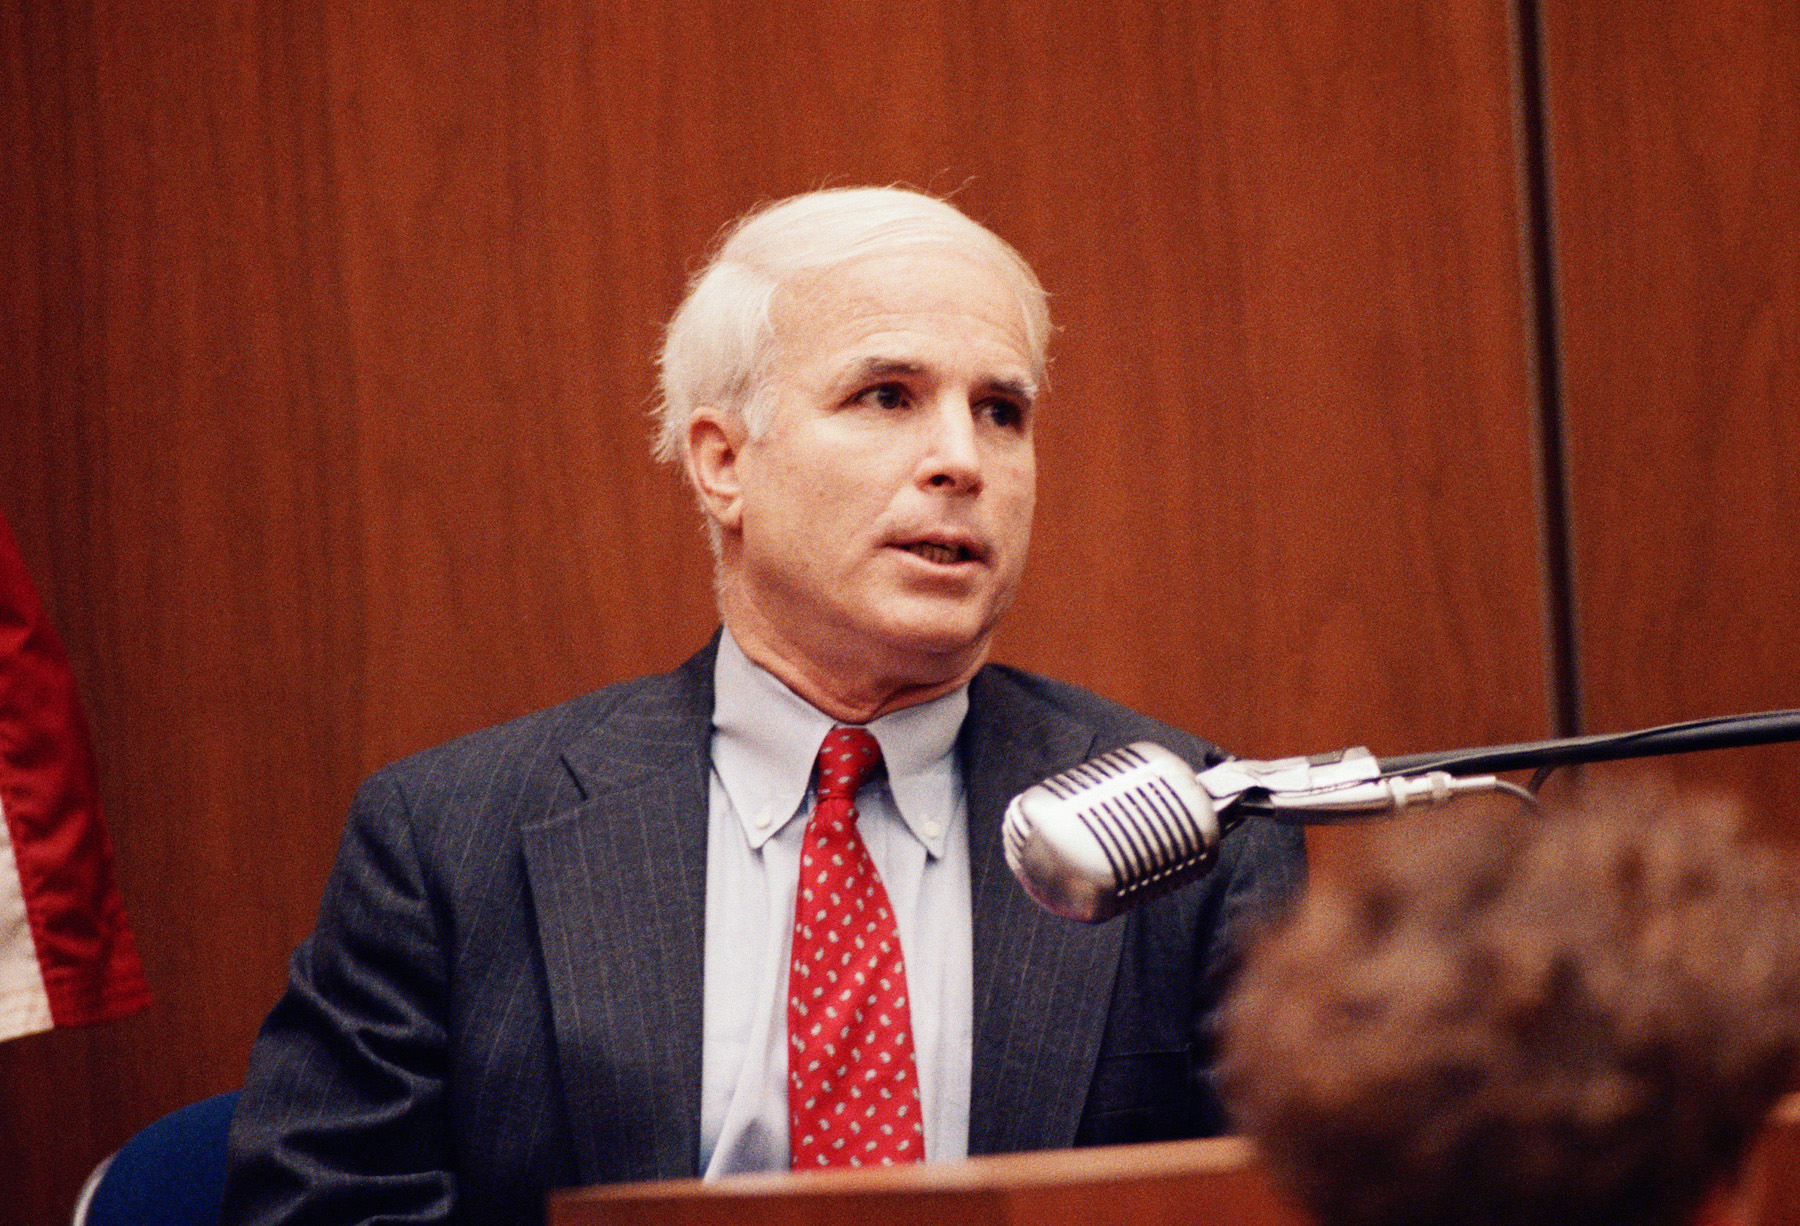 <div class='meta'><div class='origin-logo' data-origin='AP'></div><span class='caption-text' data-credit='AP Photo/Nick Ut'>U. S. Sen. John McCain, R-Ariz., testifies in a Los Angeles courtroom Friday, Oct. 26, 1991, during the trial of former Lincoln Savings and Loan head Charles Keating.</span></div>